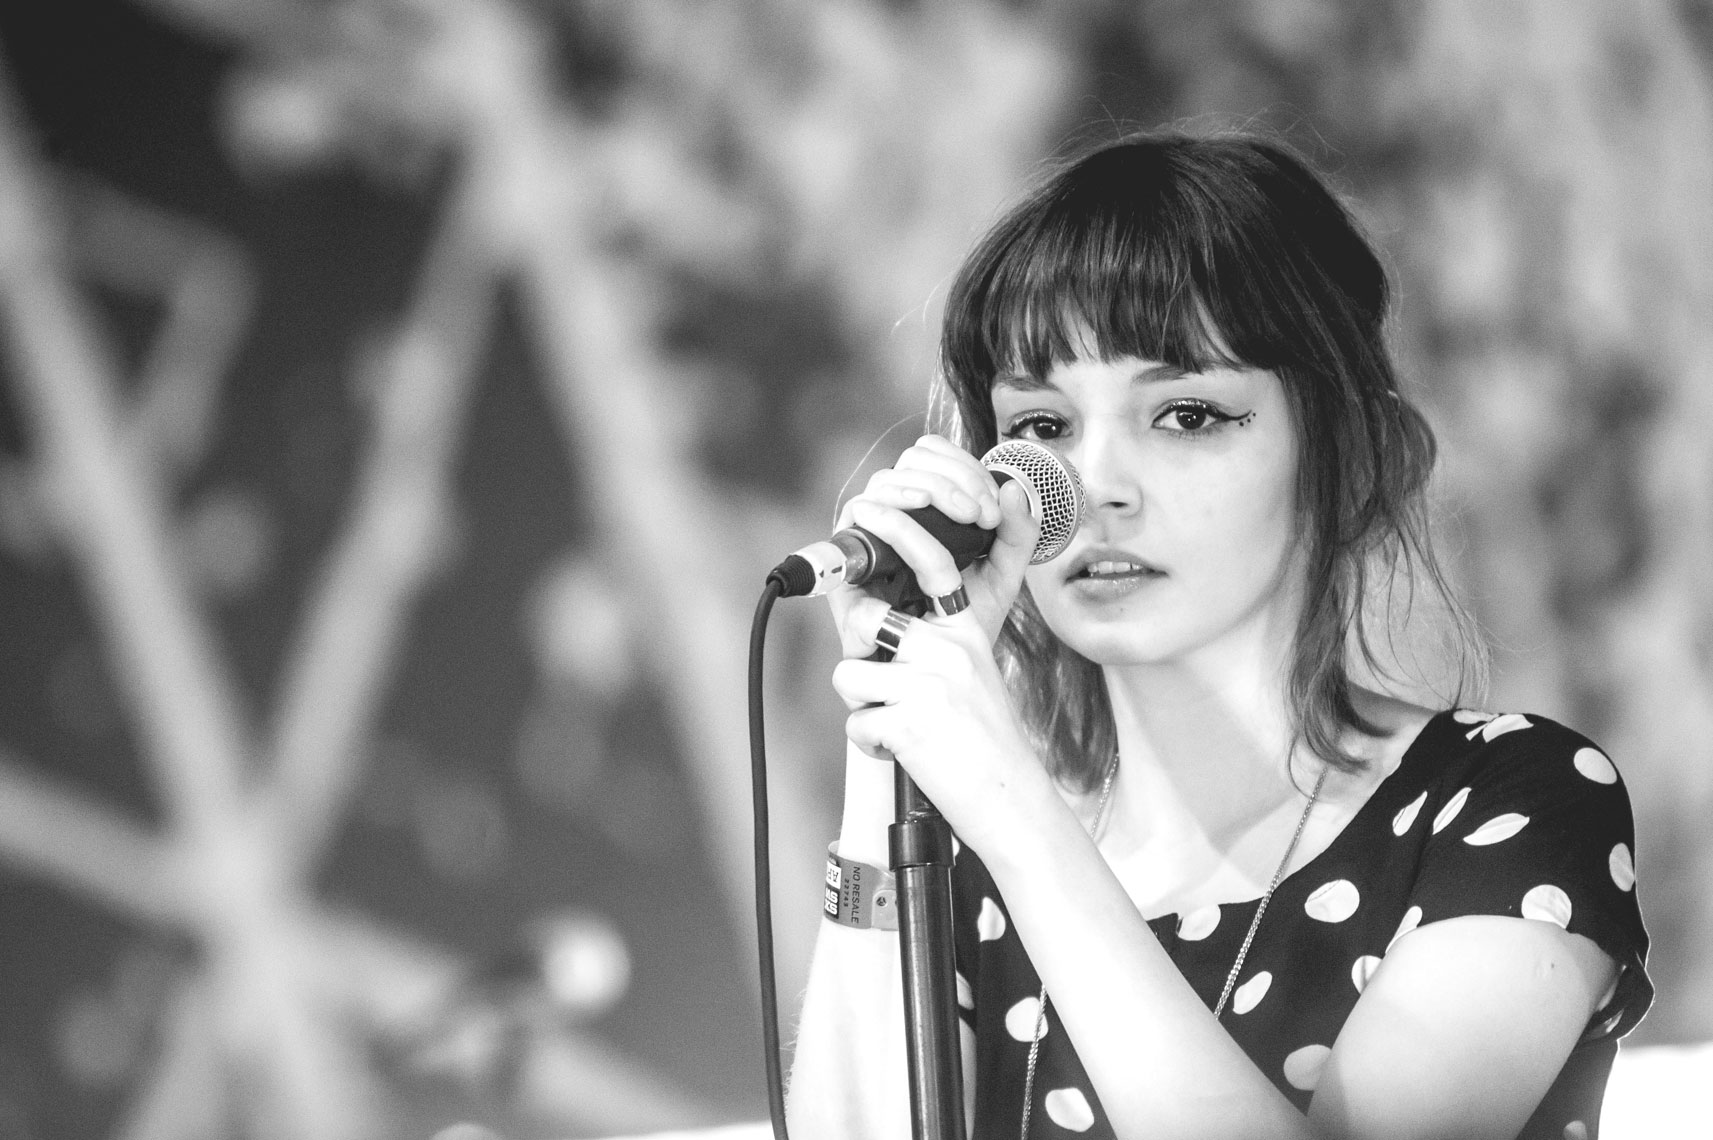 CHVRCHES-performs-at-The-Fader-Fort-for-SXSW-2013-on-Thursday,-March-14-22